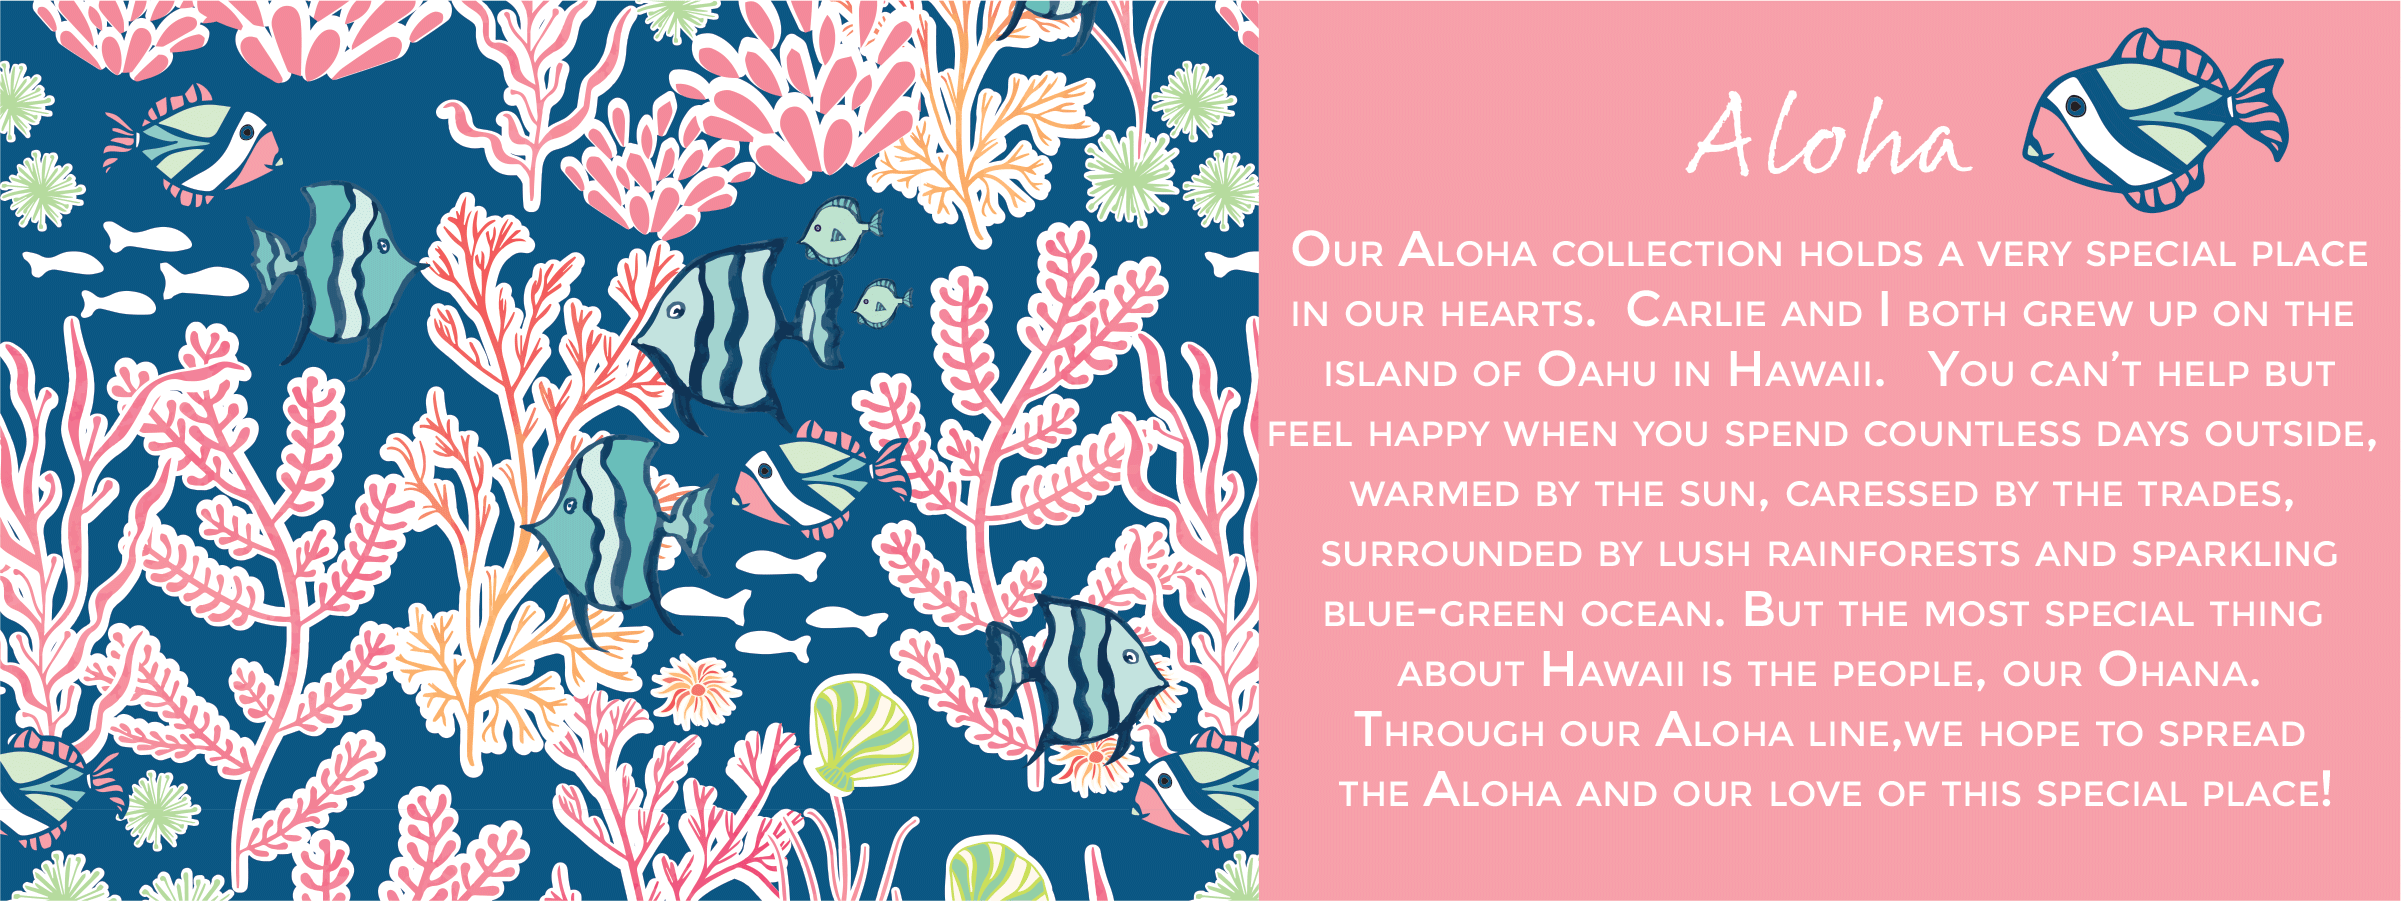 collectionbanners_Aloha.png